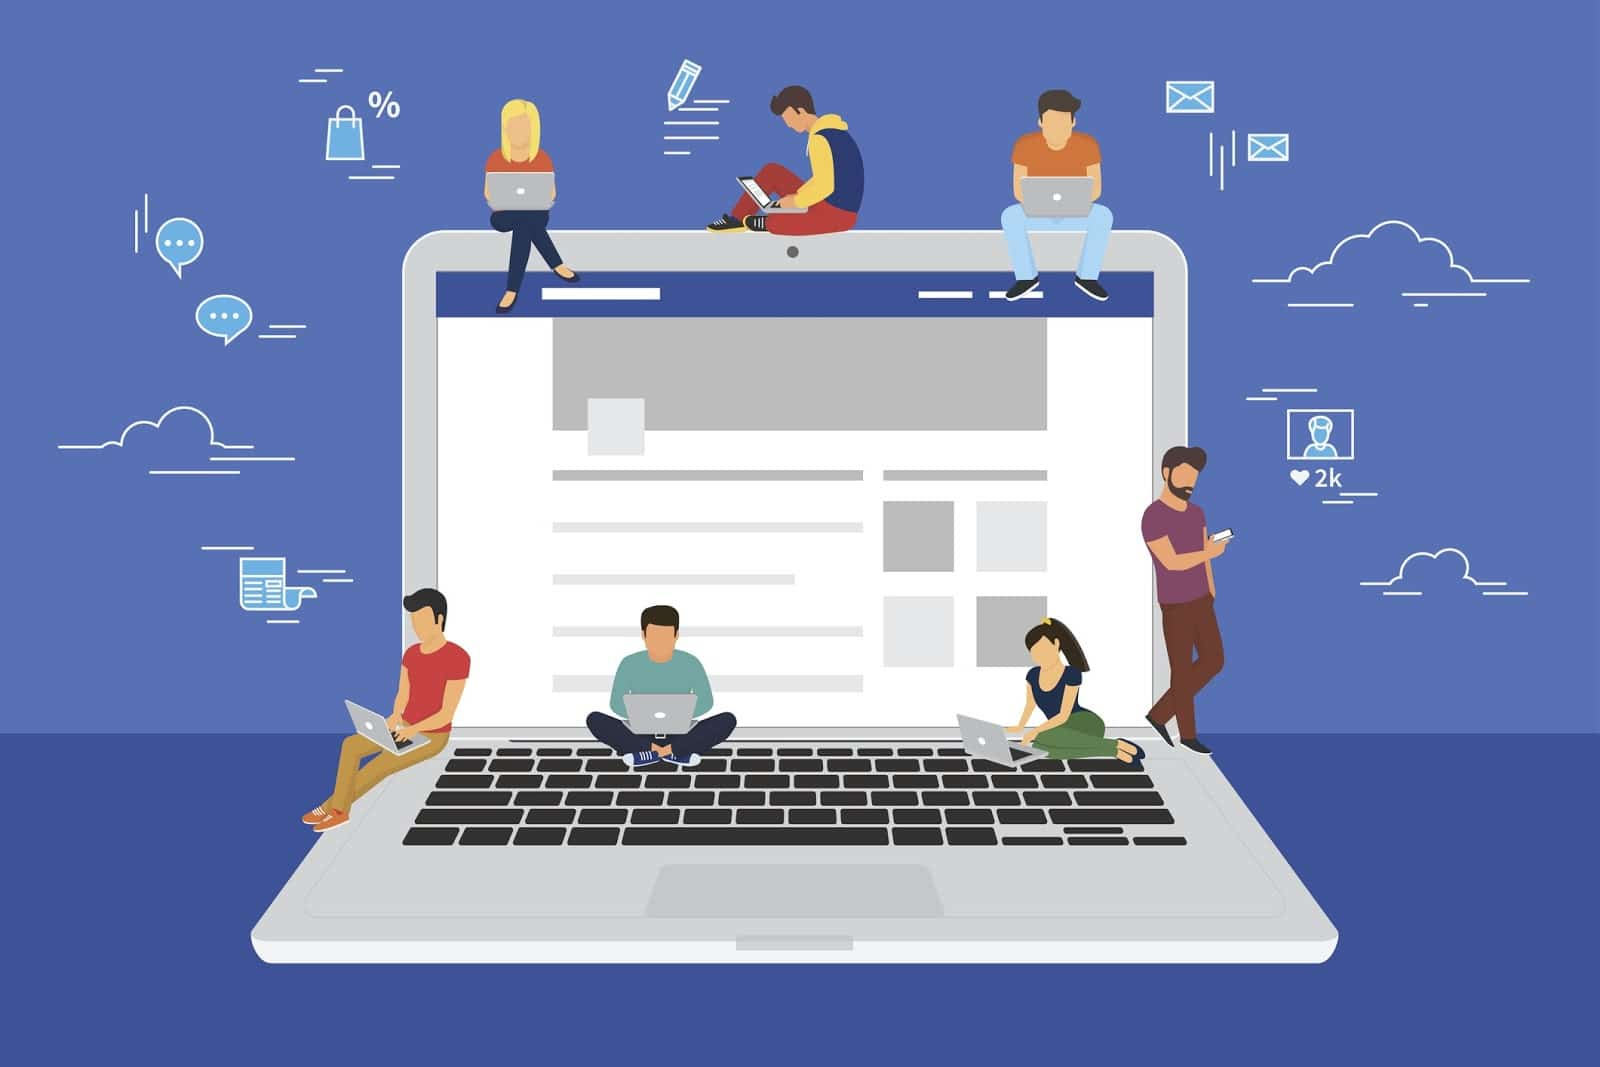 Acquiring Customers With An Online Community